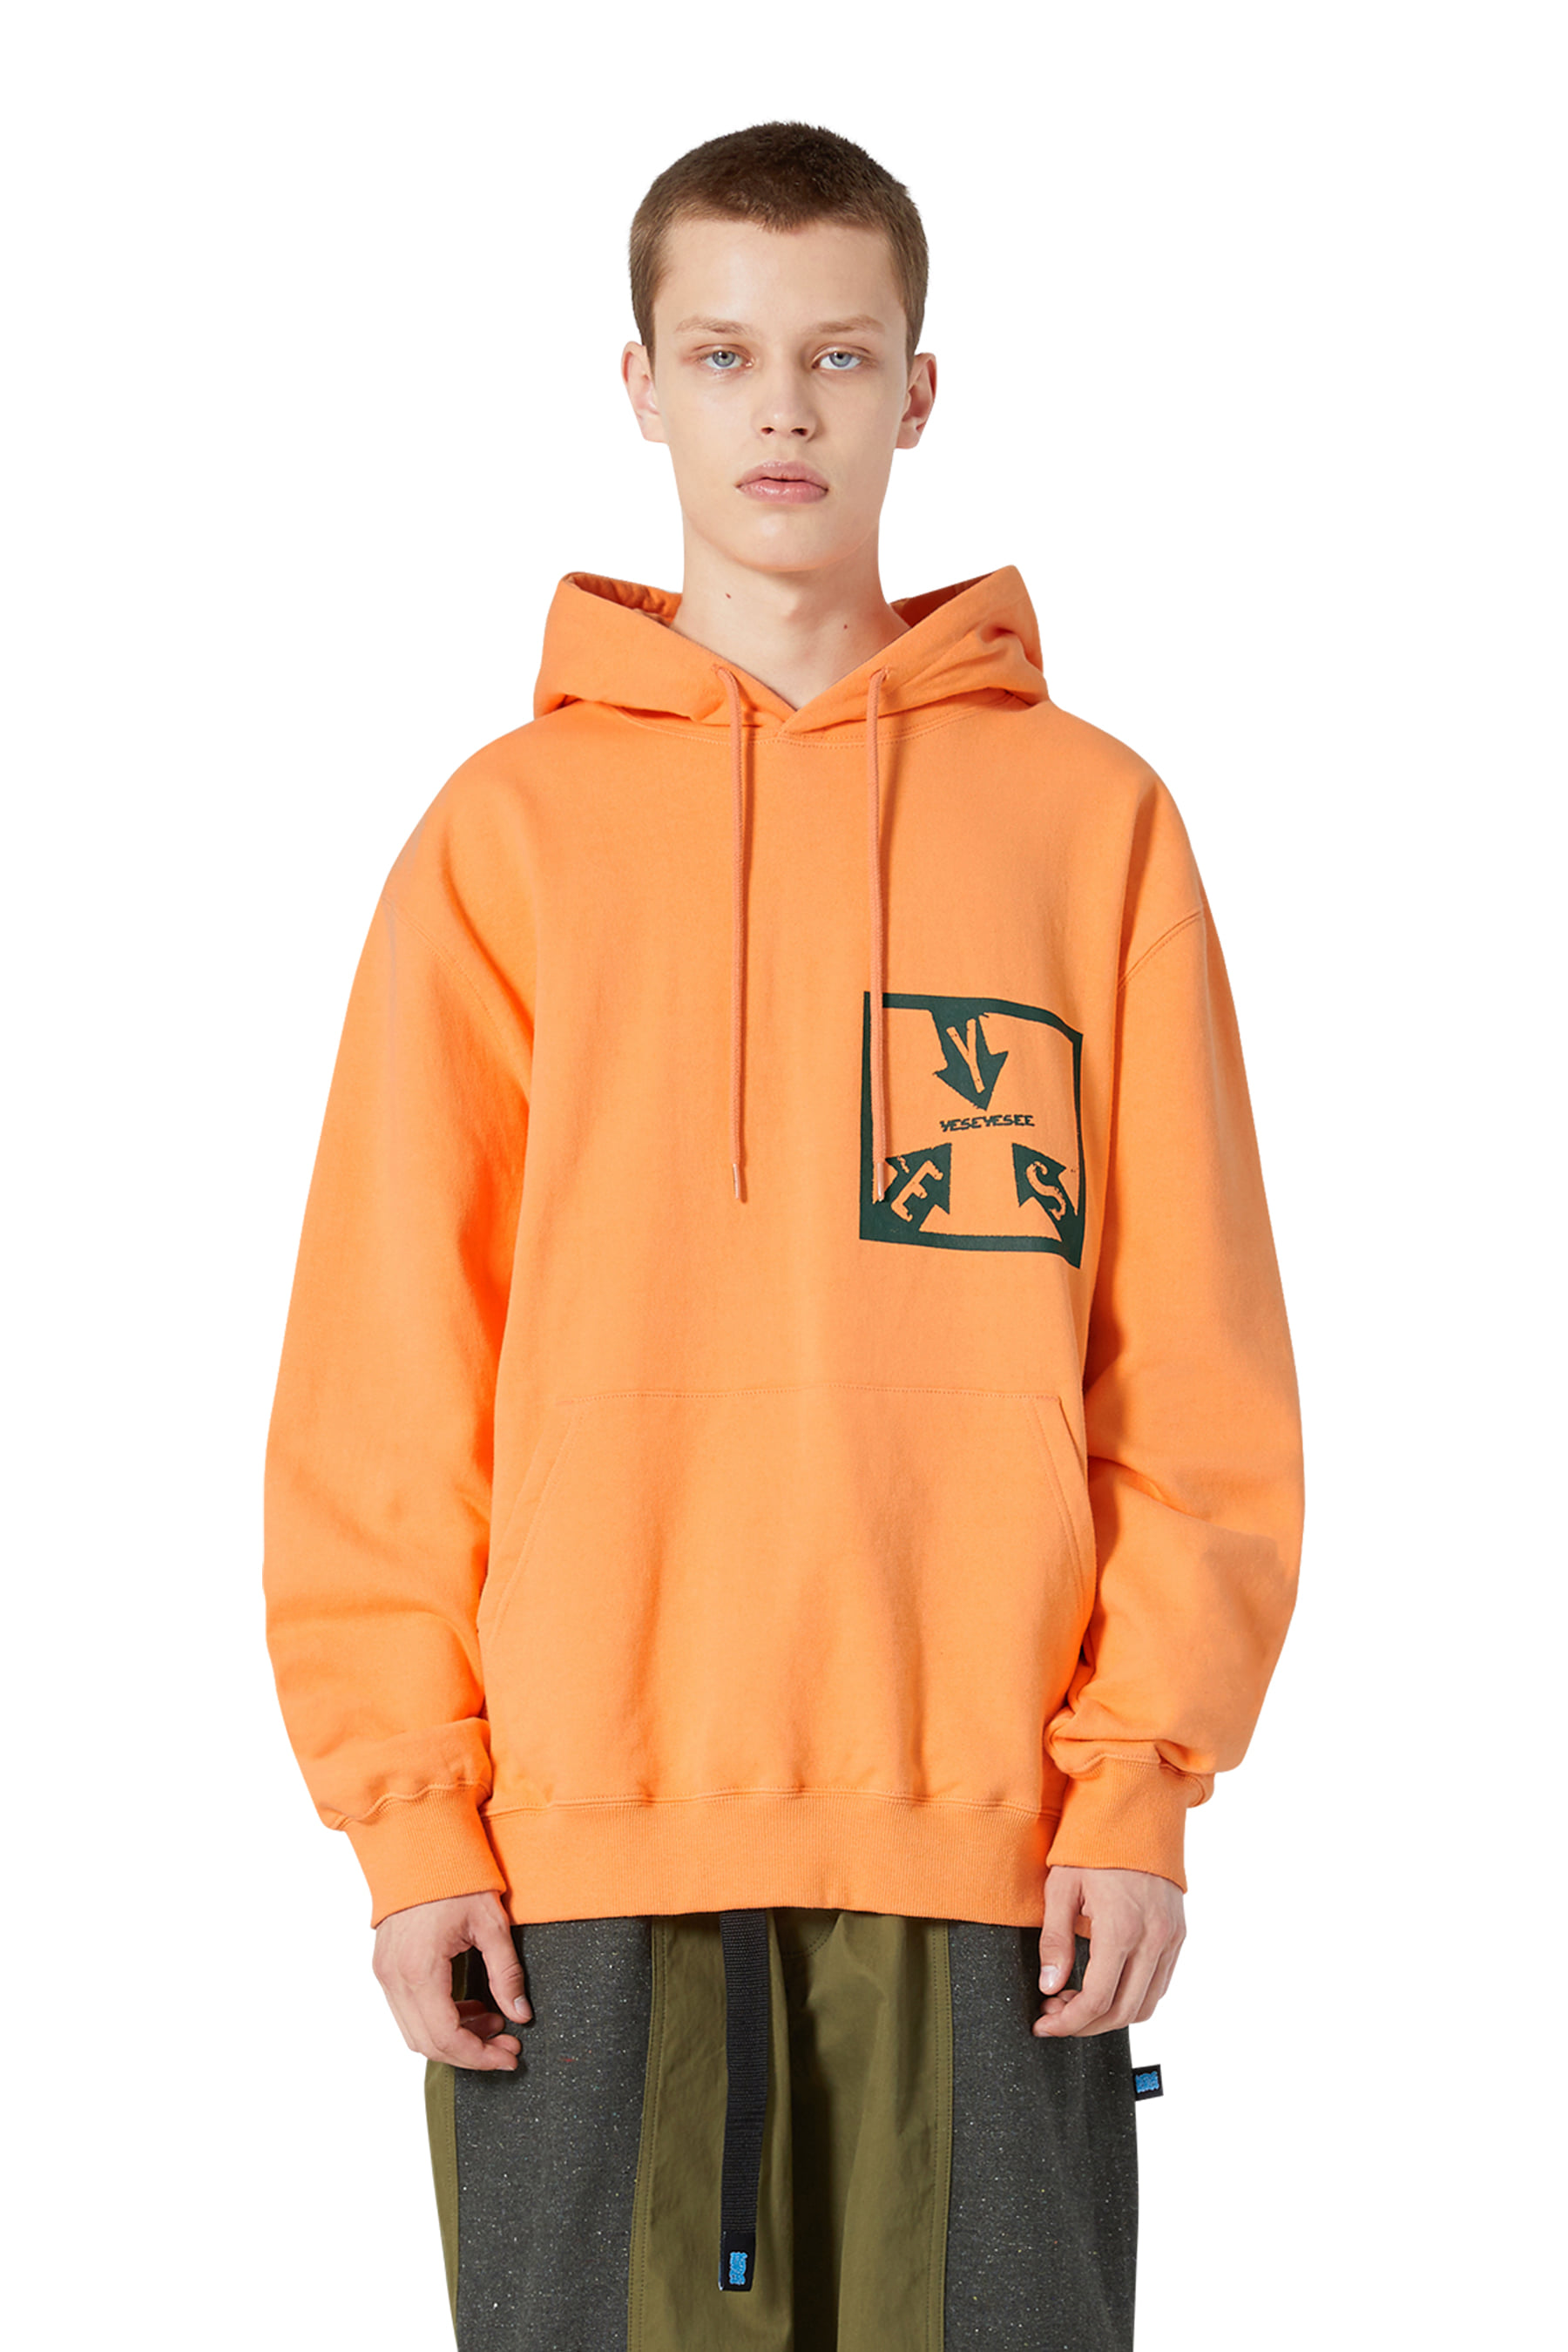 Y.E.S Path Hoodie Orange